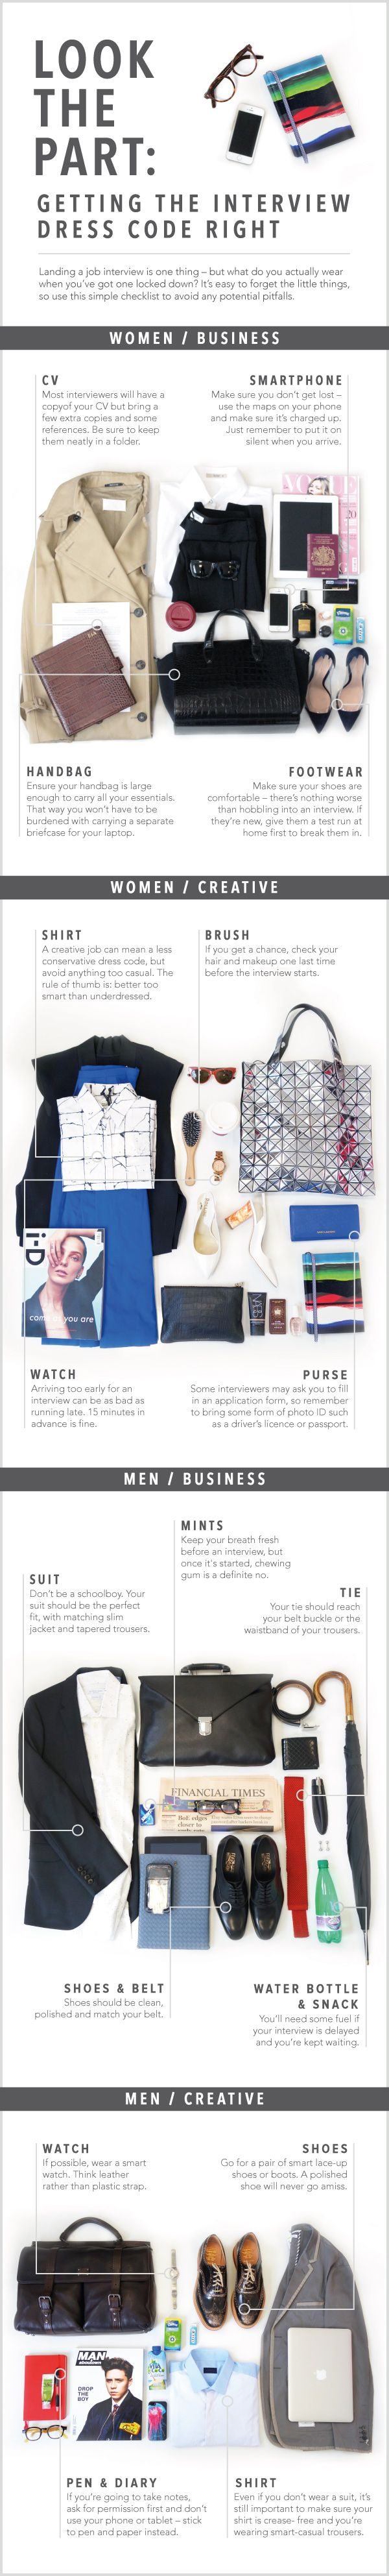 best images about dress for success men vests check out this visual guide to what to wear to